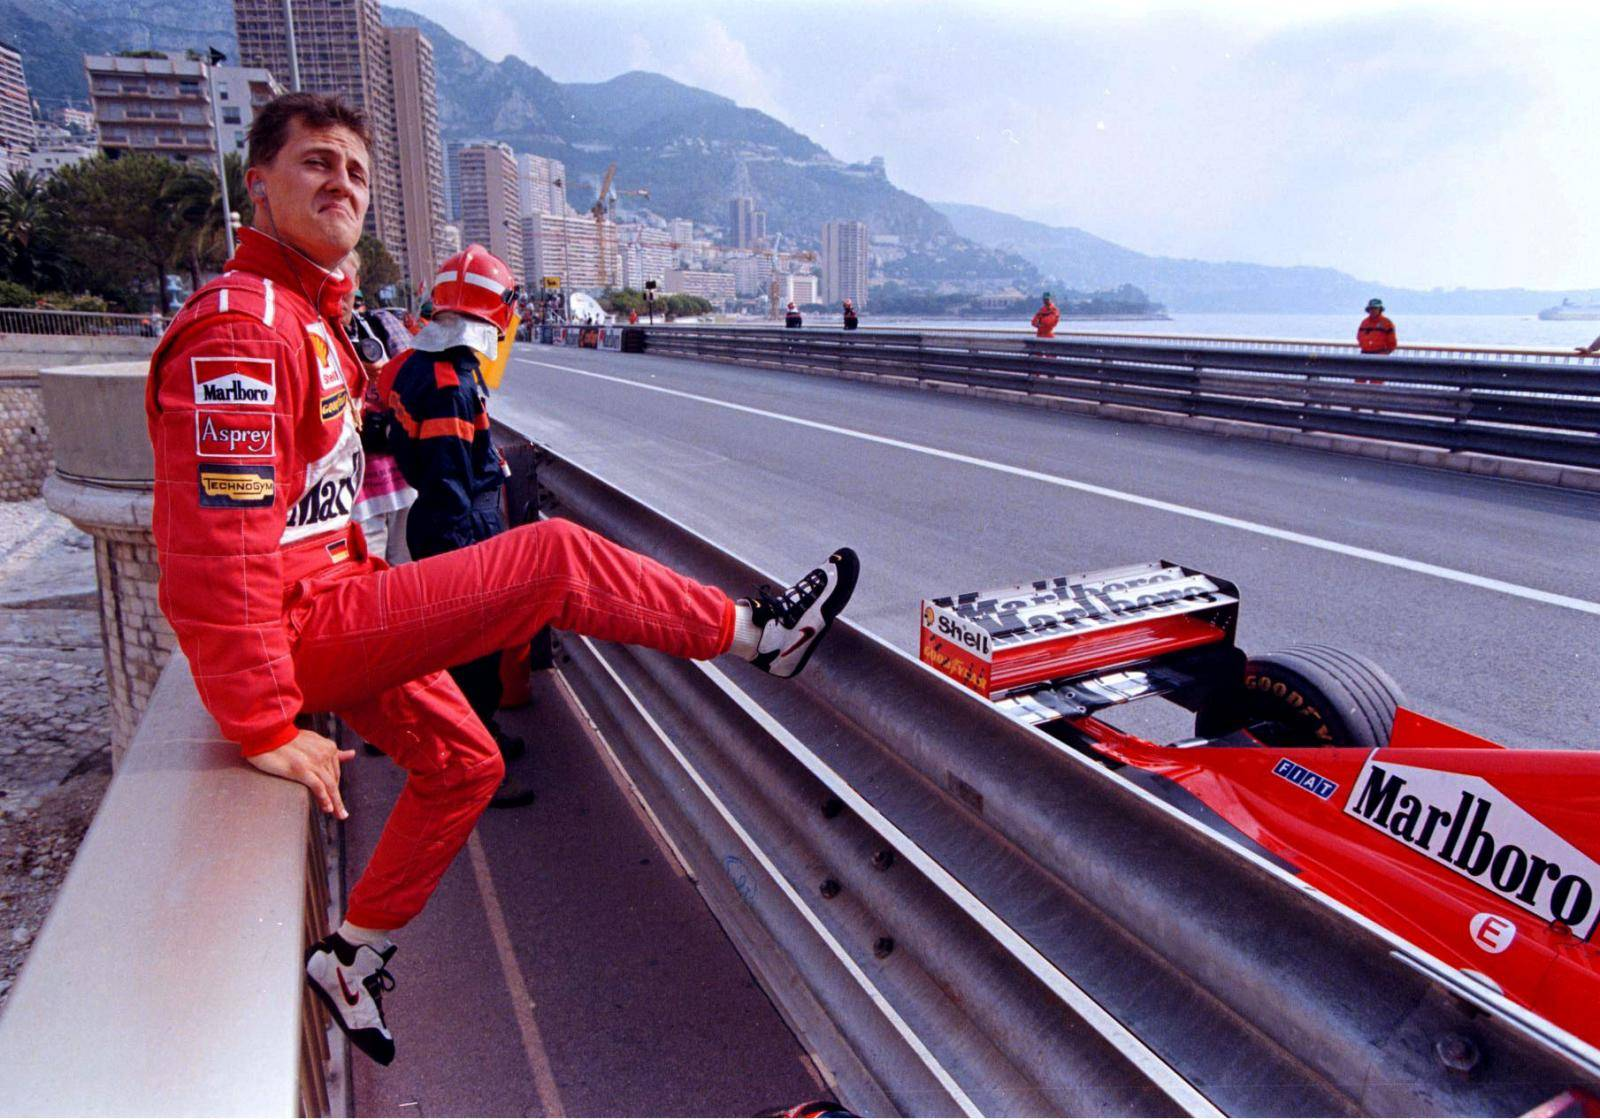 FILE PHOTO: Germany's Michael Schumacher poses next to his Ferrari during qualifying for the Monaco Grand Prix in Monte Carlo